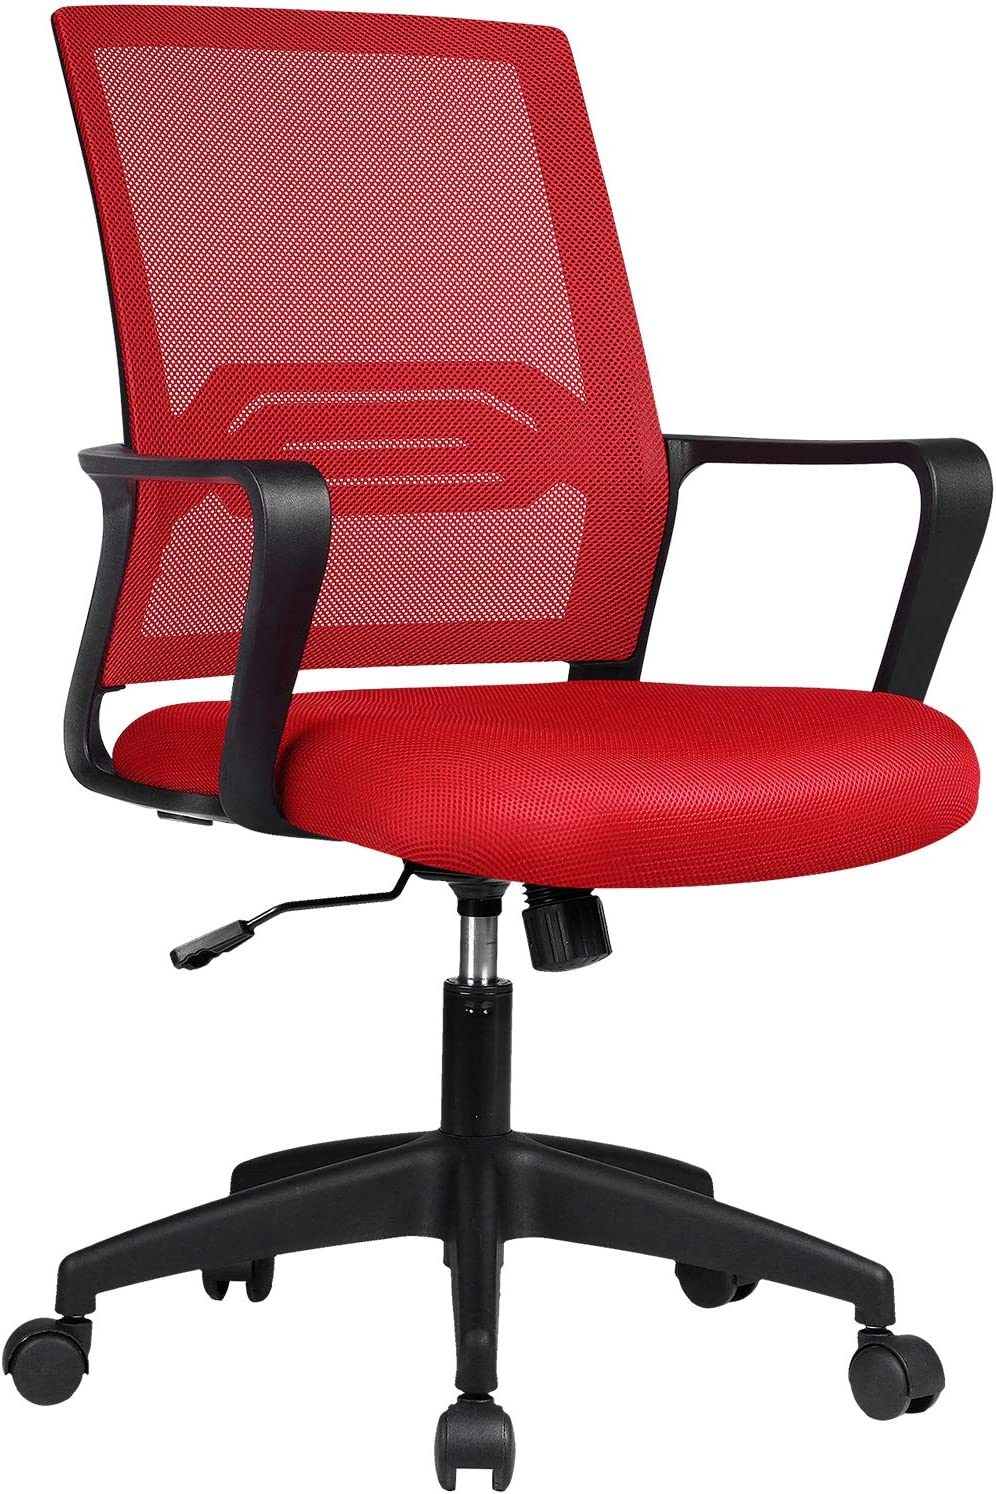 ComHoma Office Chair Ergonomic Desk Chair Mesh Computer Chair Mid Back Mesh Home Office Swivel Chair, Modern Executive Chair with Armrests Lumbar Support(RED),